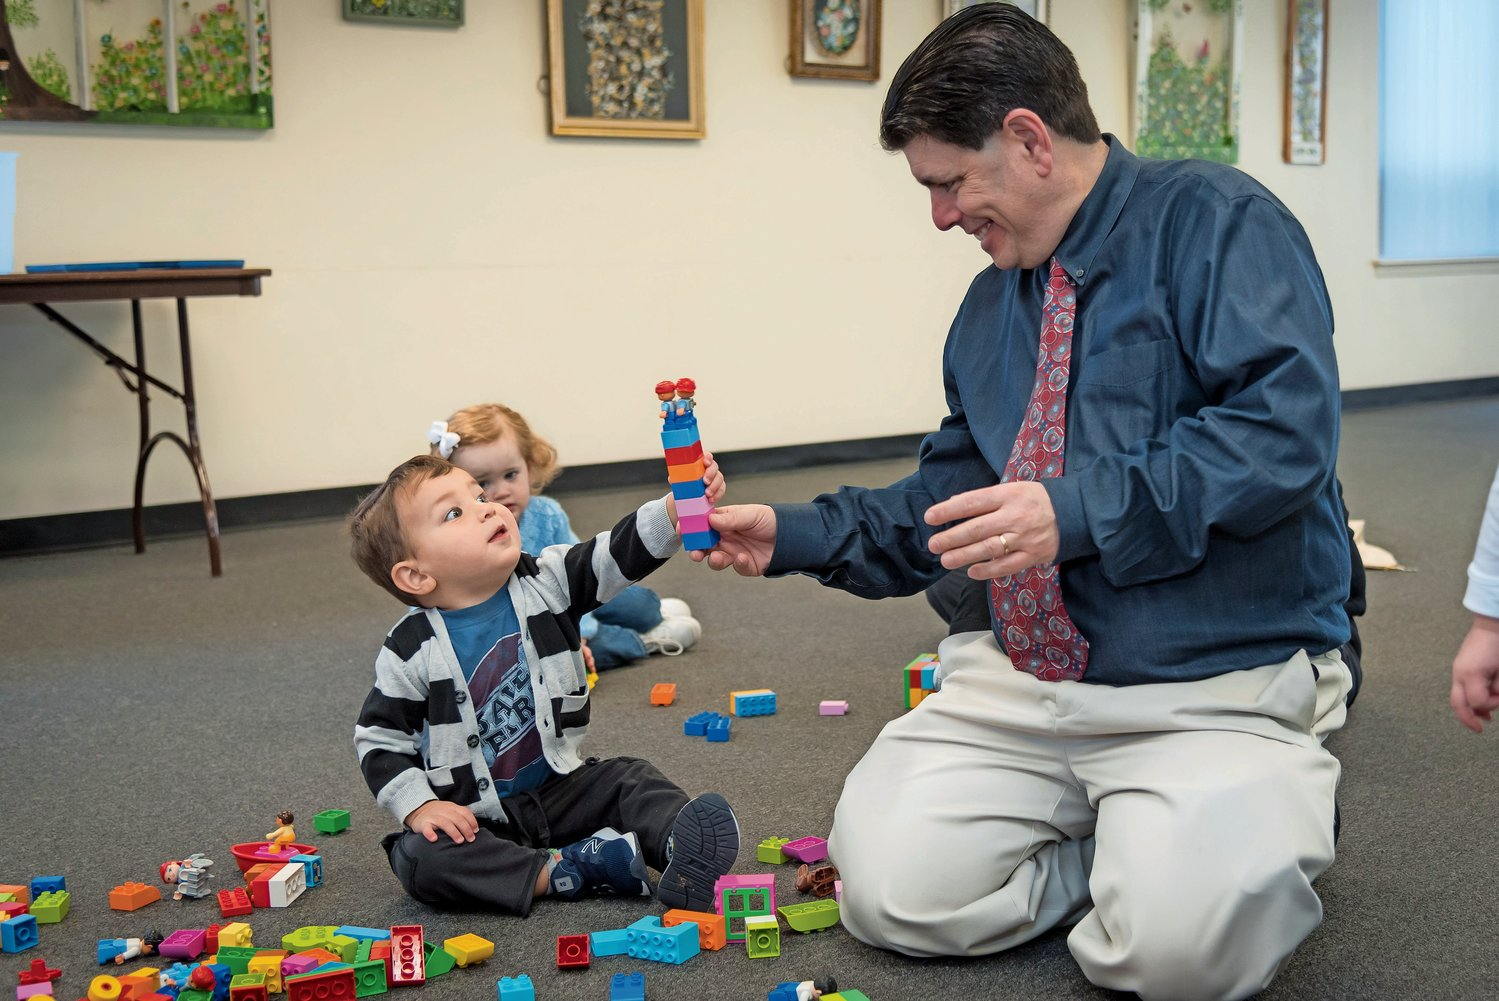 Ashton Stlyer, 1½, was eager to get his hands on the LEGO tower Jeffery Vasconi had made.